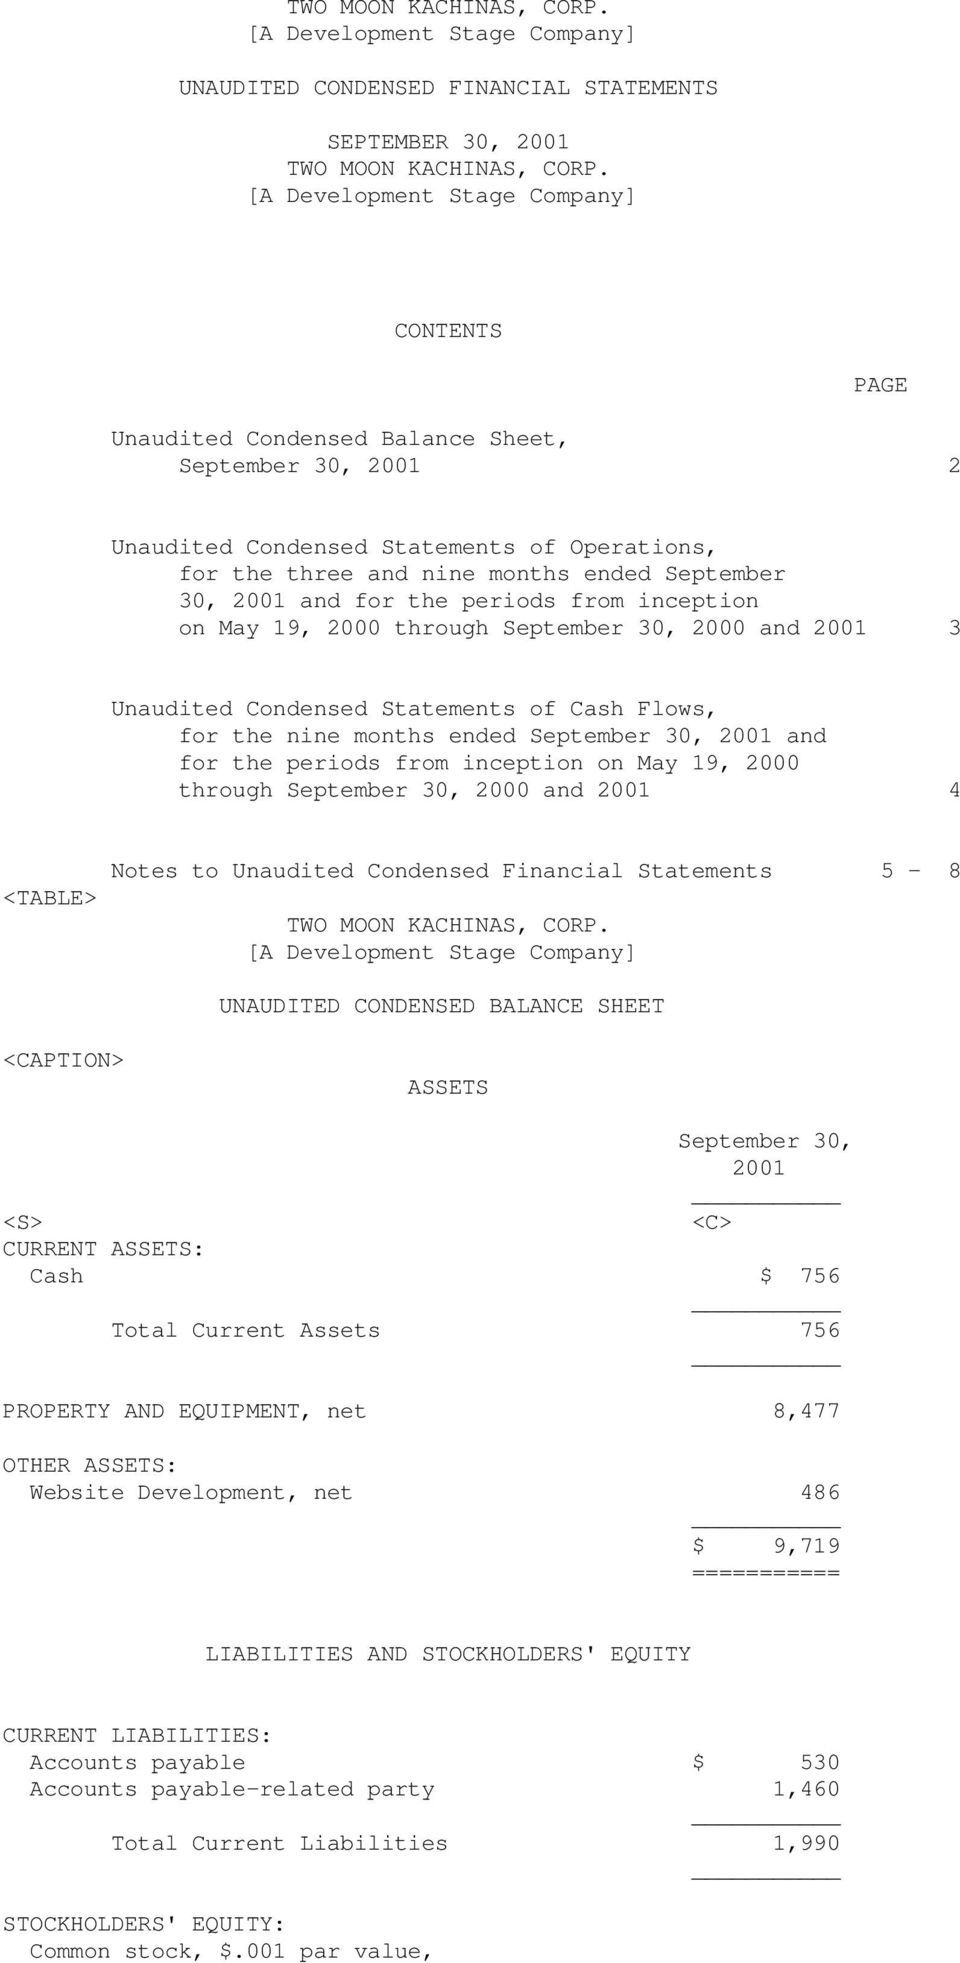 September 30, 2001 and for the periods from inception on May 19, 2000 through September 30, 2000 and 2001 4 <TABLE> Notes to Unaudited Condensed Financial Statements 5-8 UNAUDITED CONDENSED BALANCE